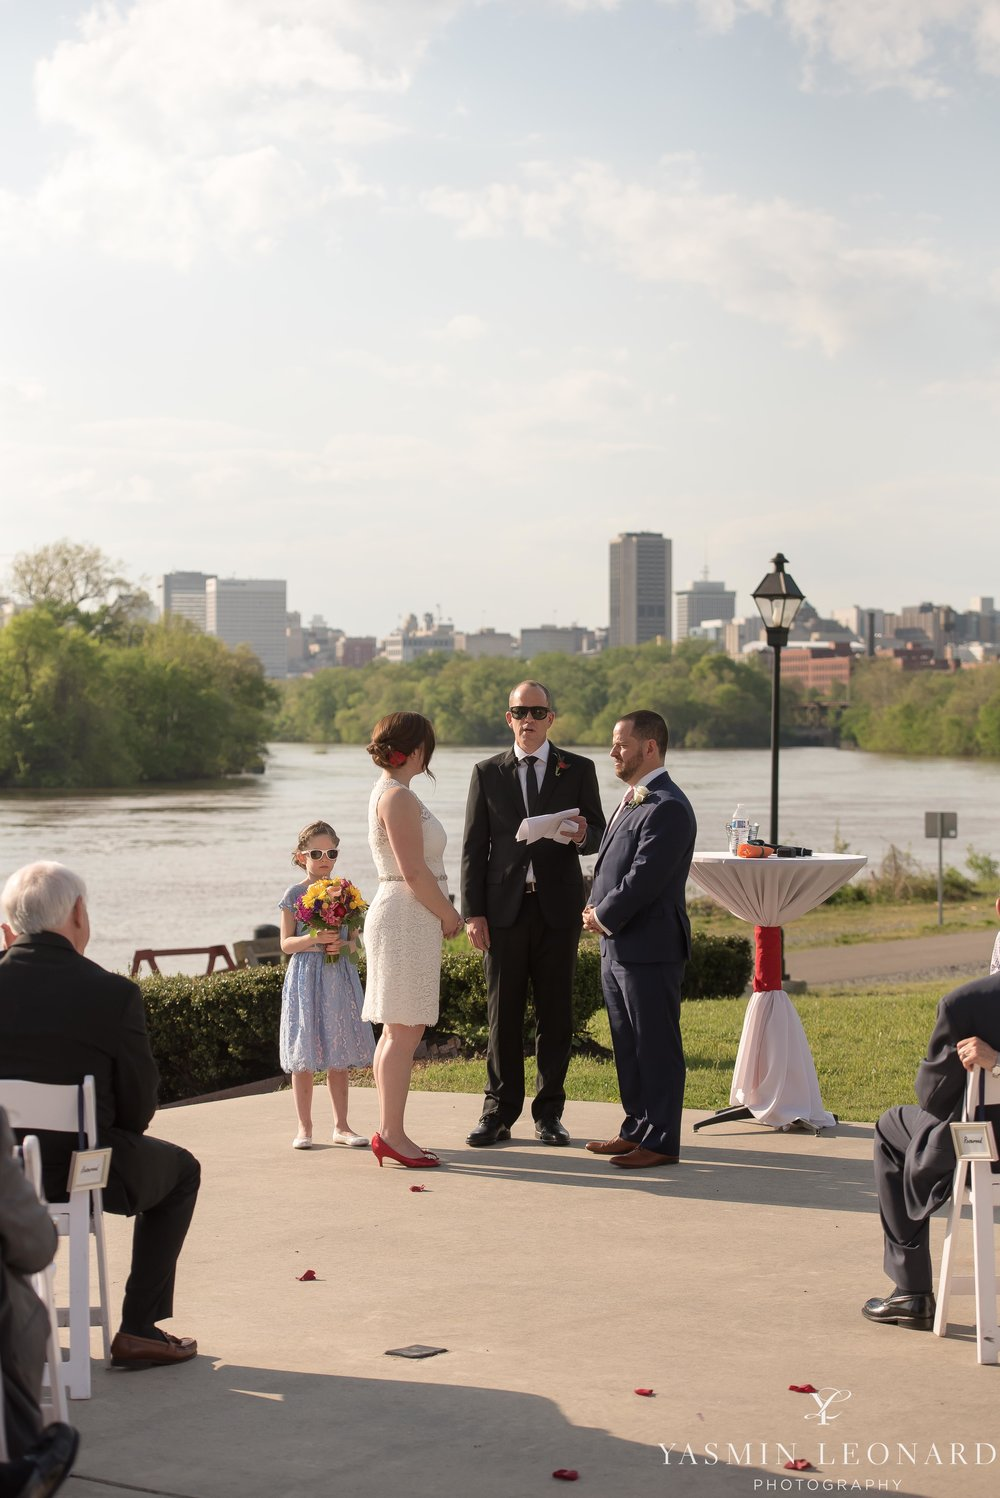 The Boathouse - The boathouse weddings - RVA Weddings - Richmond VA - Richmond VA Weddings - The Boathouse Weddings-46.jpg